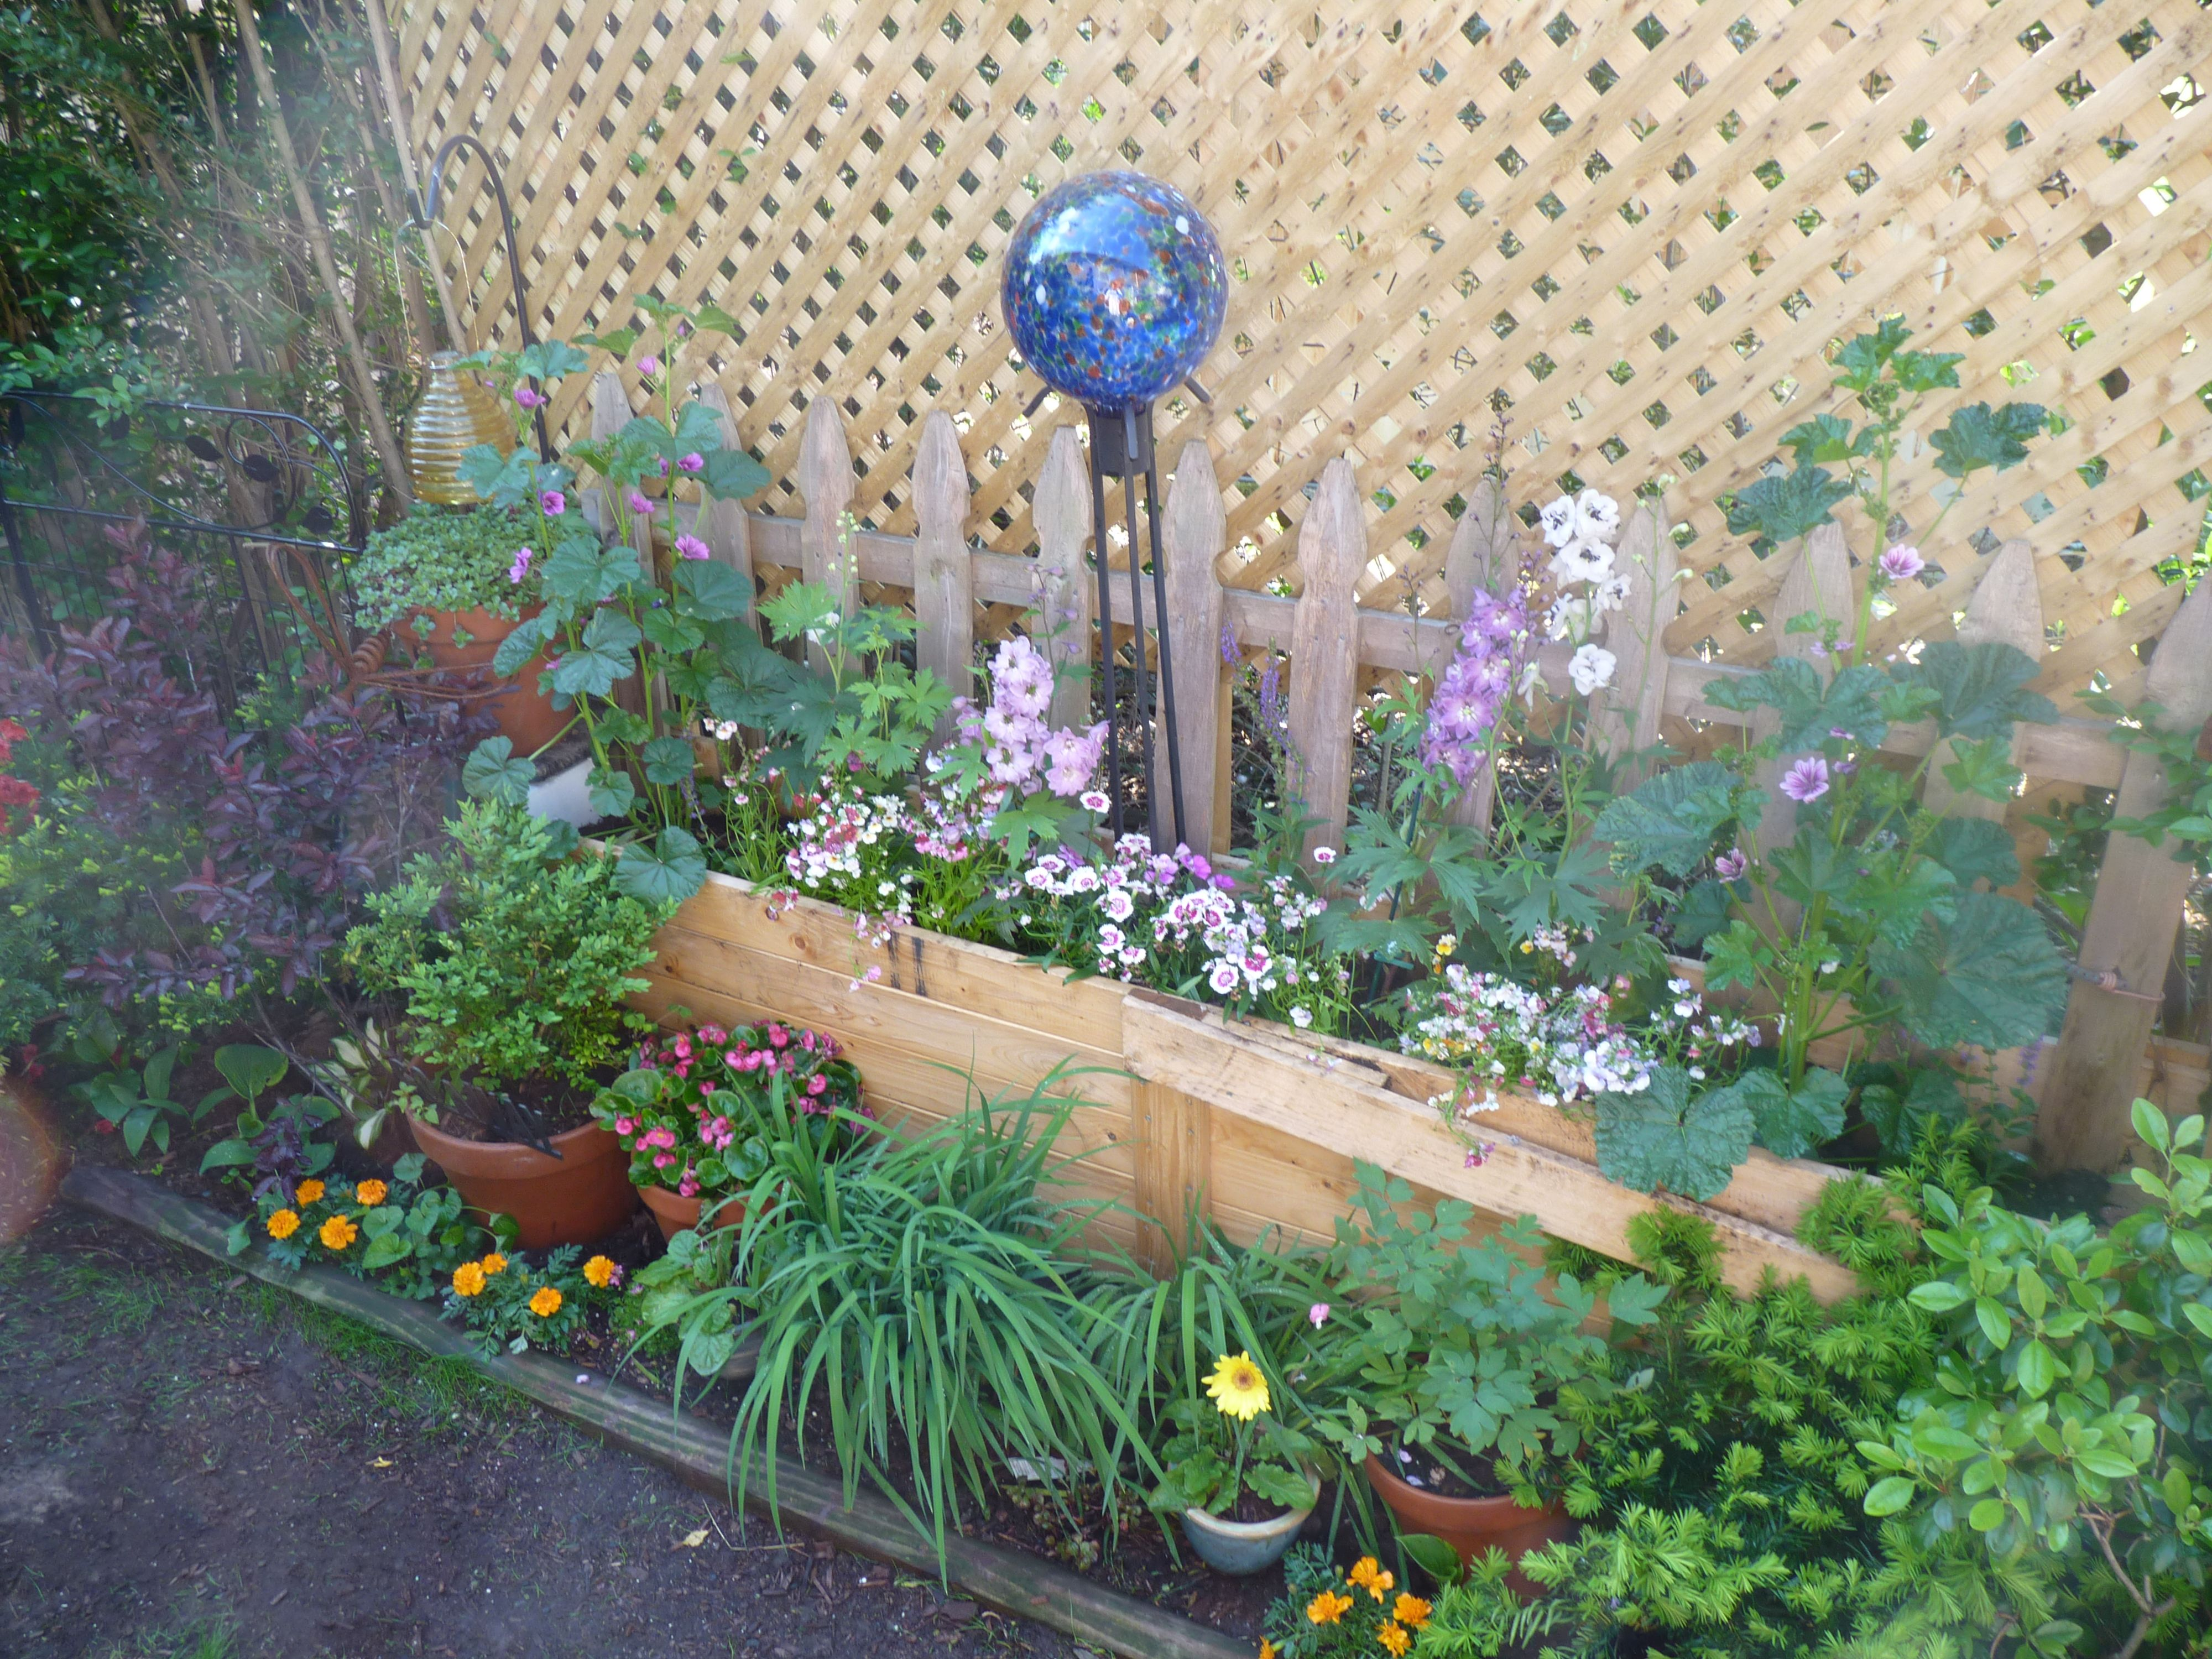 scrap garden wooden packing crate makes a great planter old fence adds some charm and cheap lattice privacy - Scrap Garden